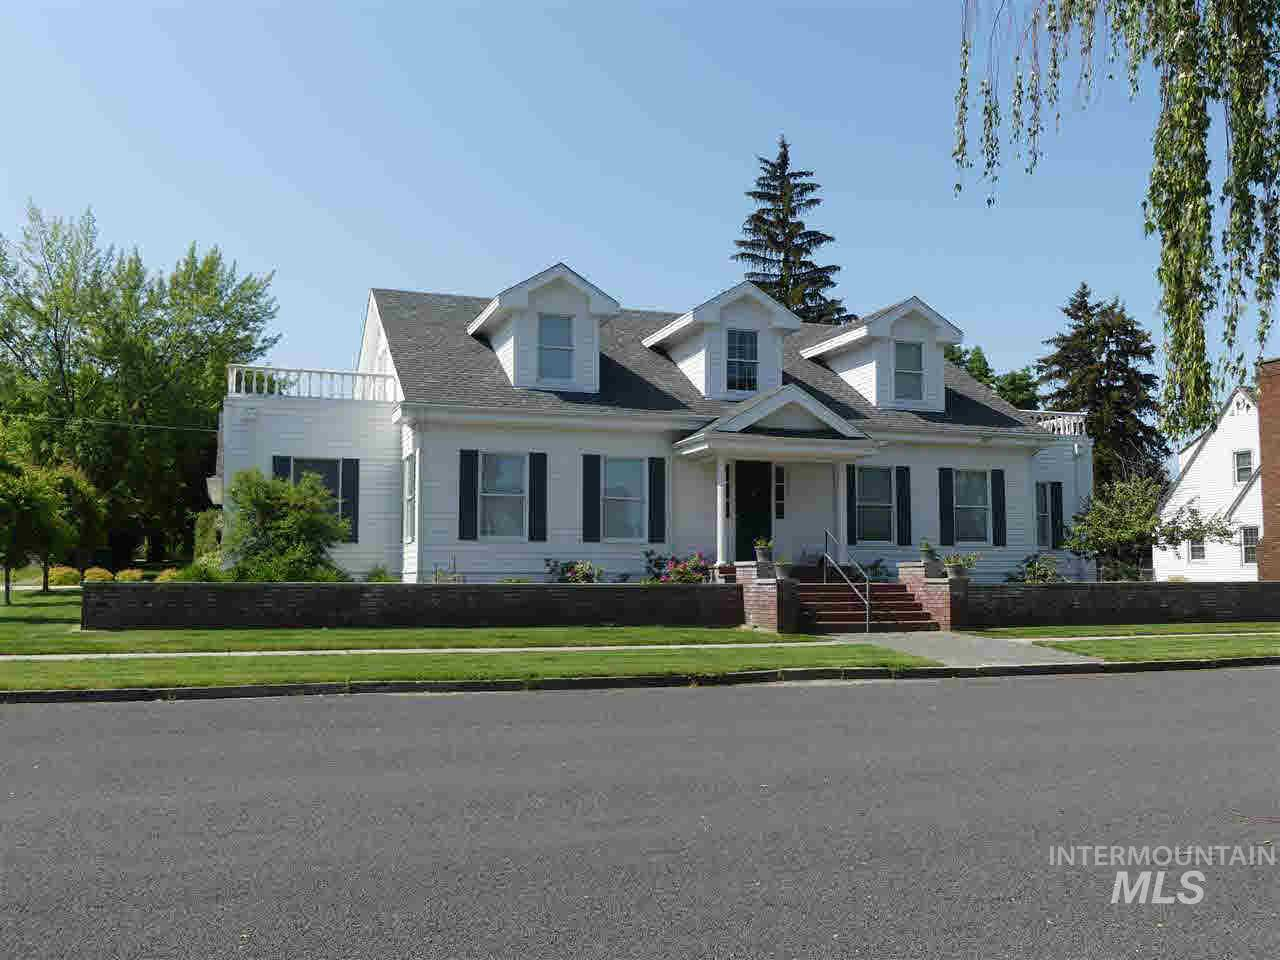 404 S HALL Property Photo - Grangeville, ID real estate listing